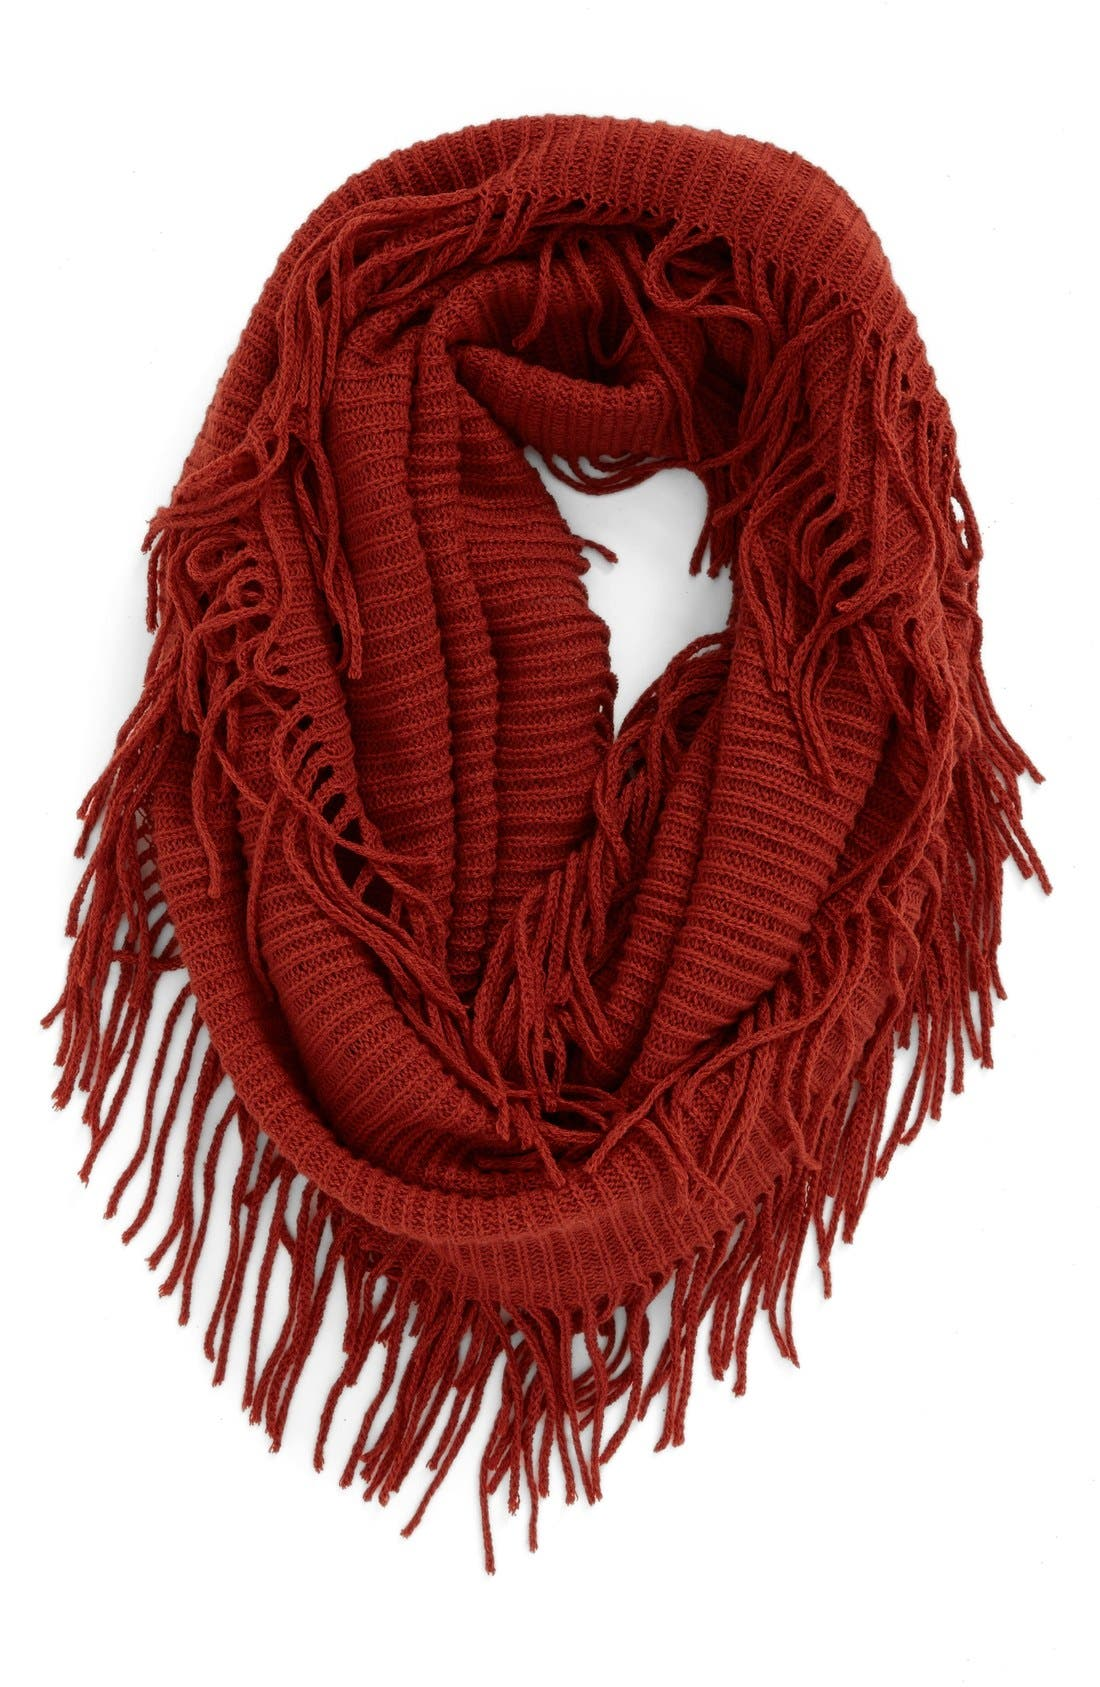 Alternate Image 1 Selected - BP. Rib Knit Fringe Infinity Scarf